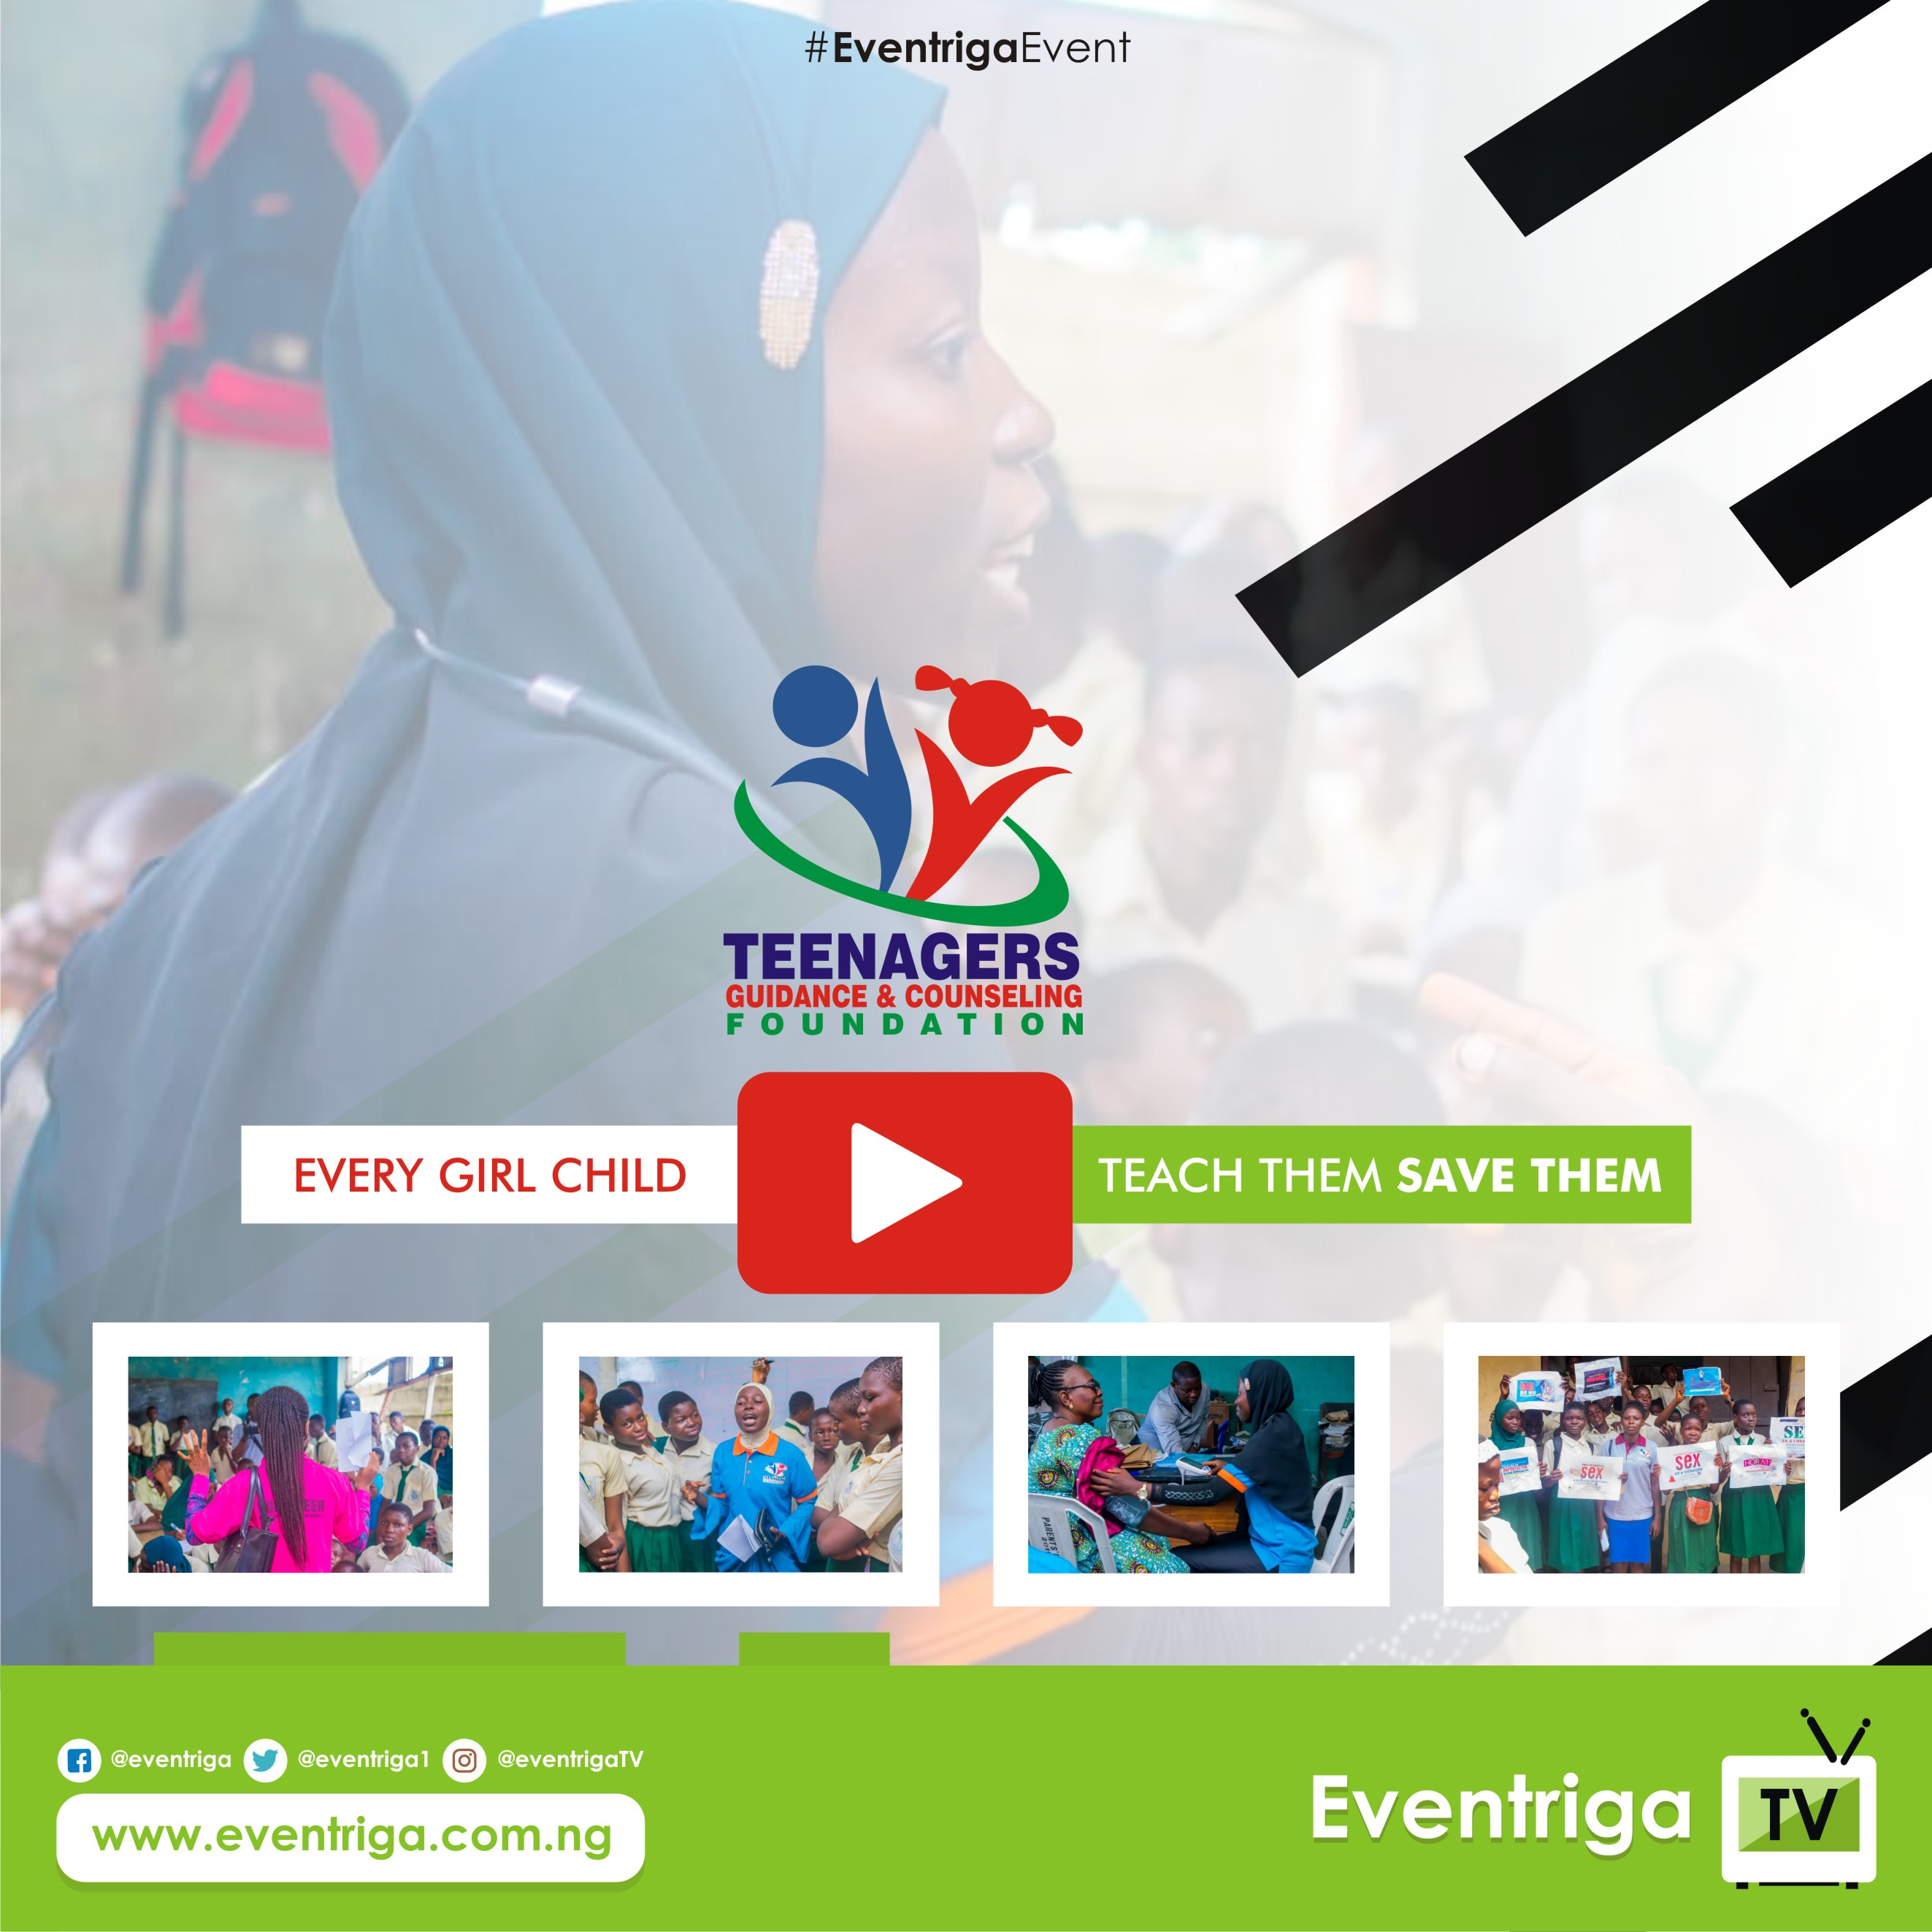 Teenagers Guidance & Counselling Foundation - Eventriga